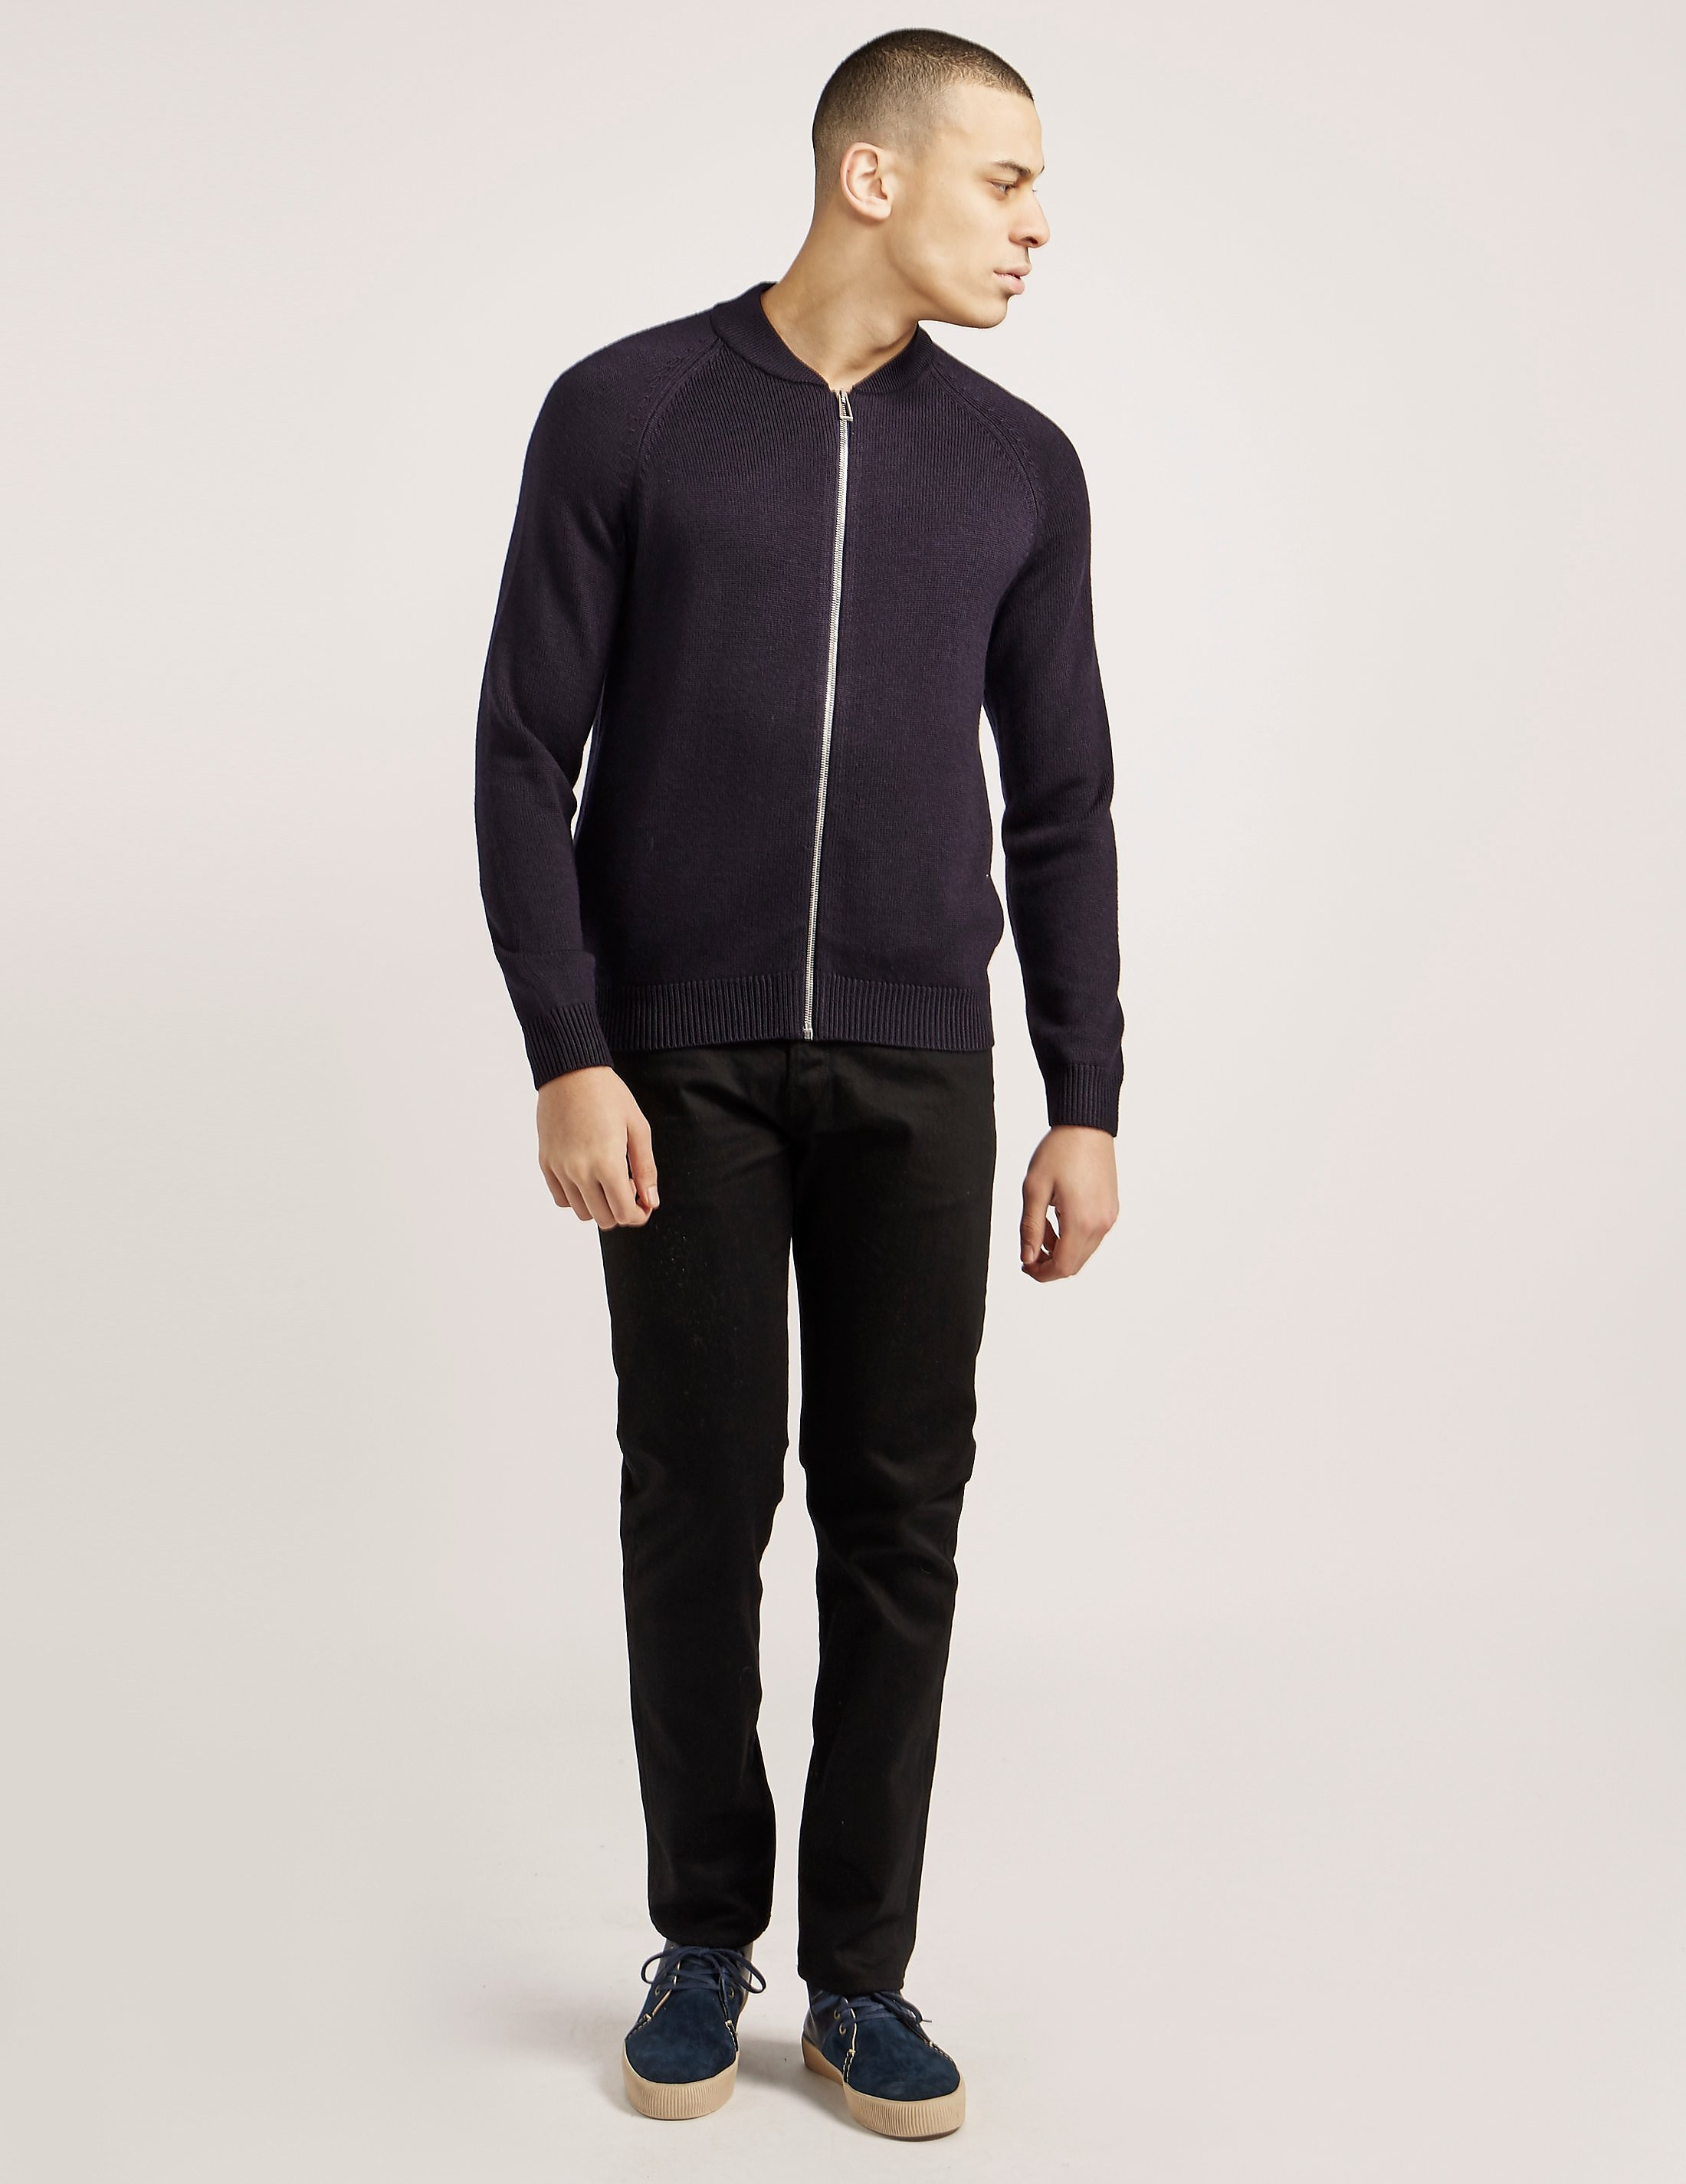 Paul Smith Merino Full Zip Knit